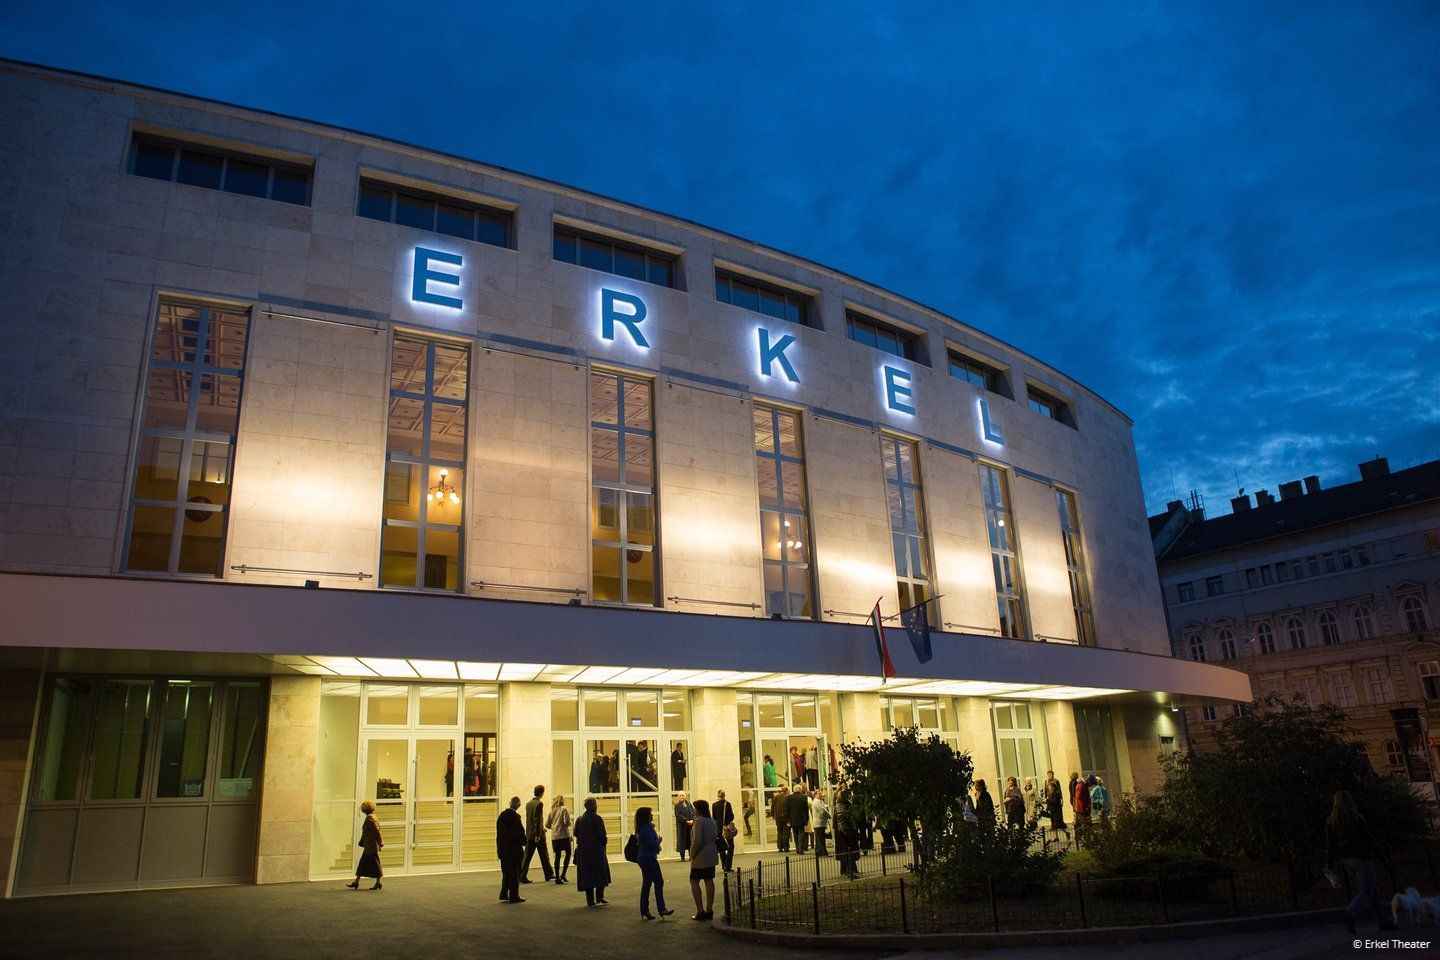 Erkel Theater outside